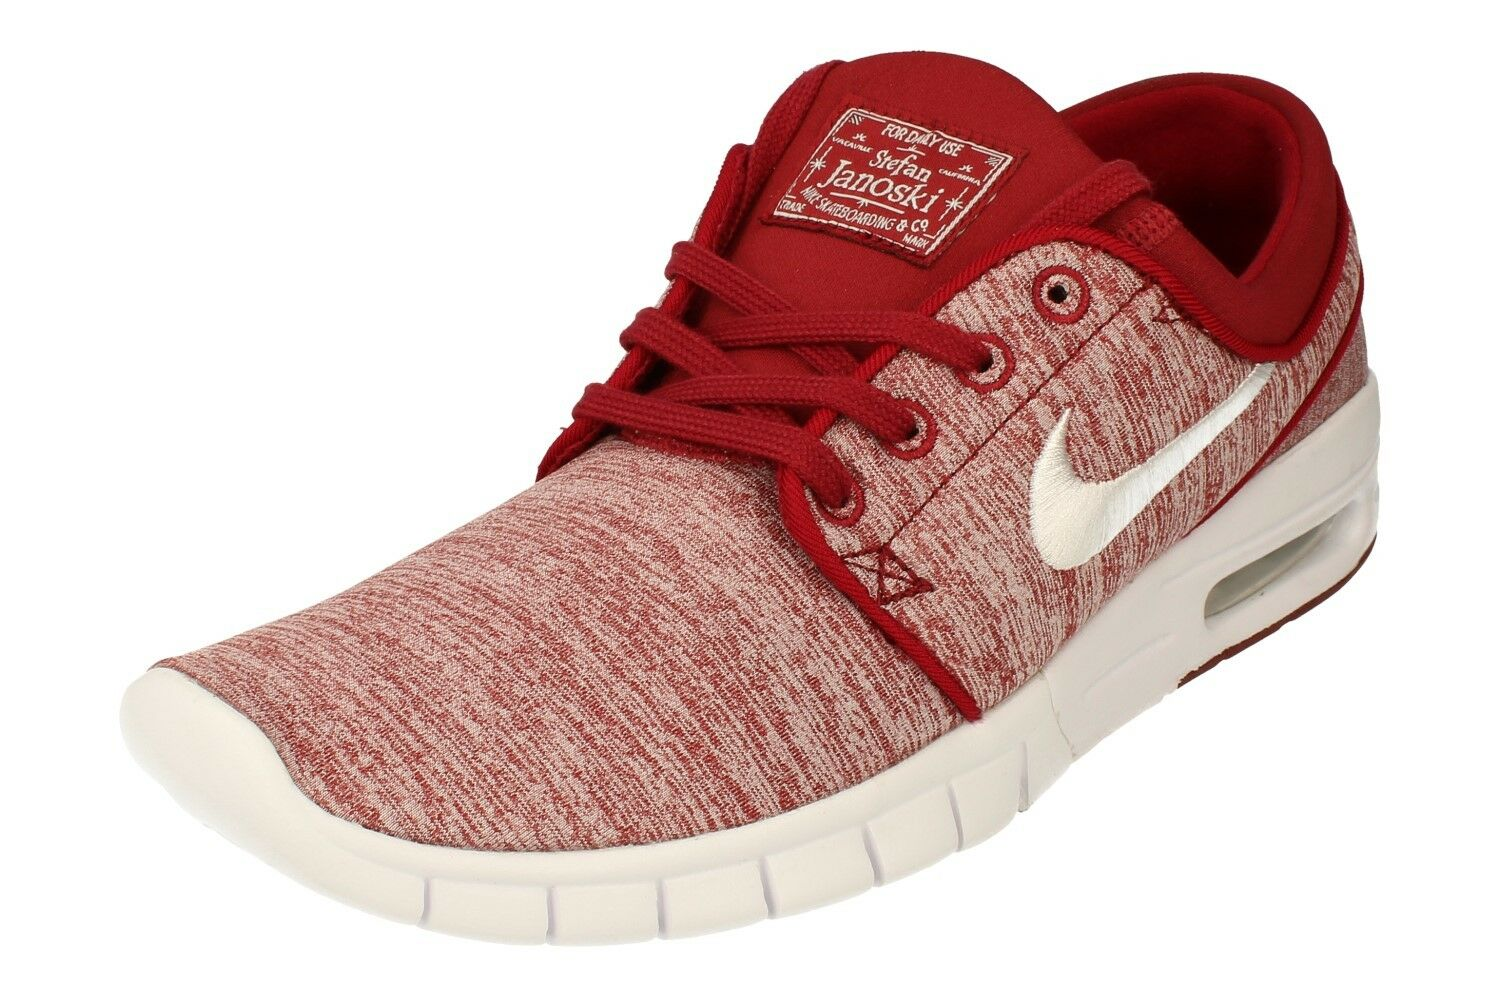 Nike Sb Stefan Janoski Max Mens Trainers 631303 Sneakers shoes 603